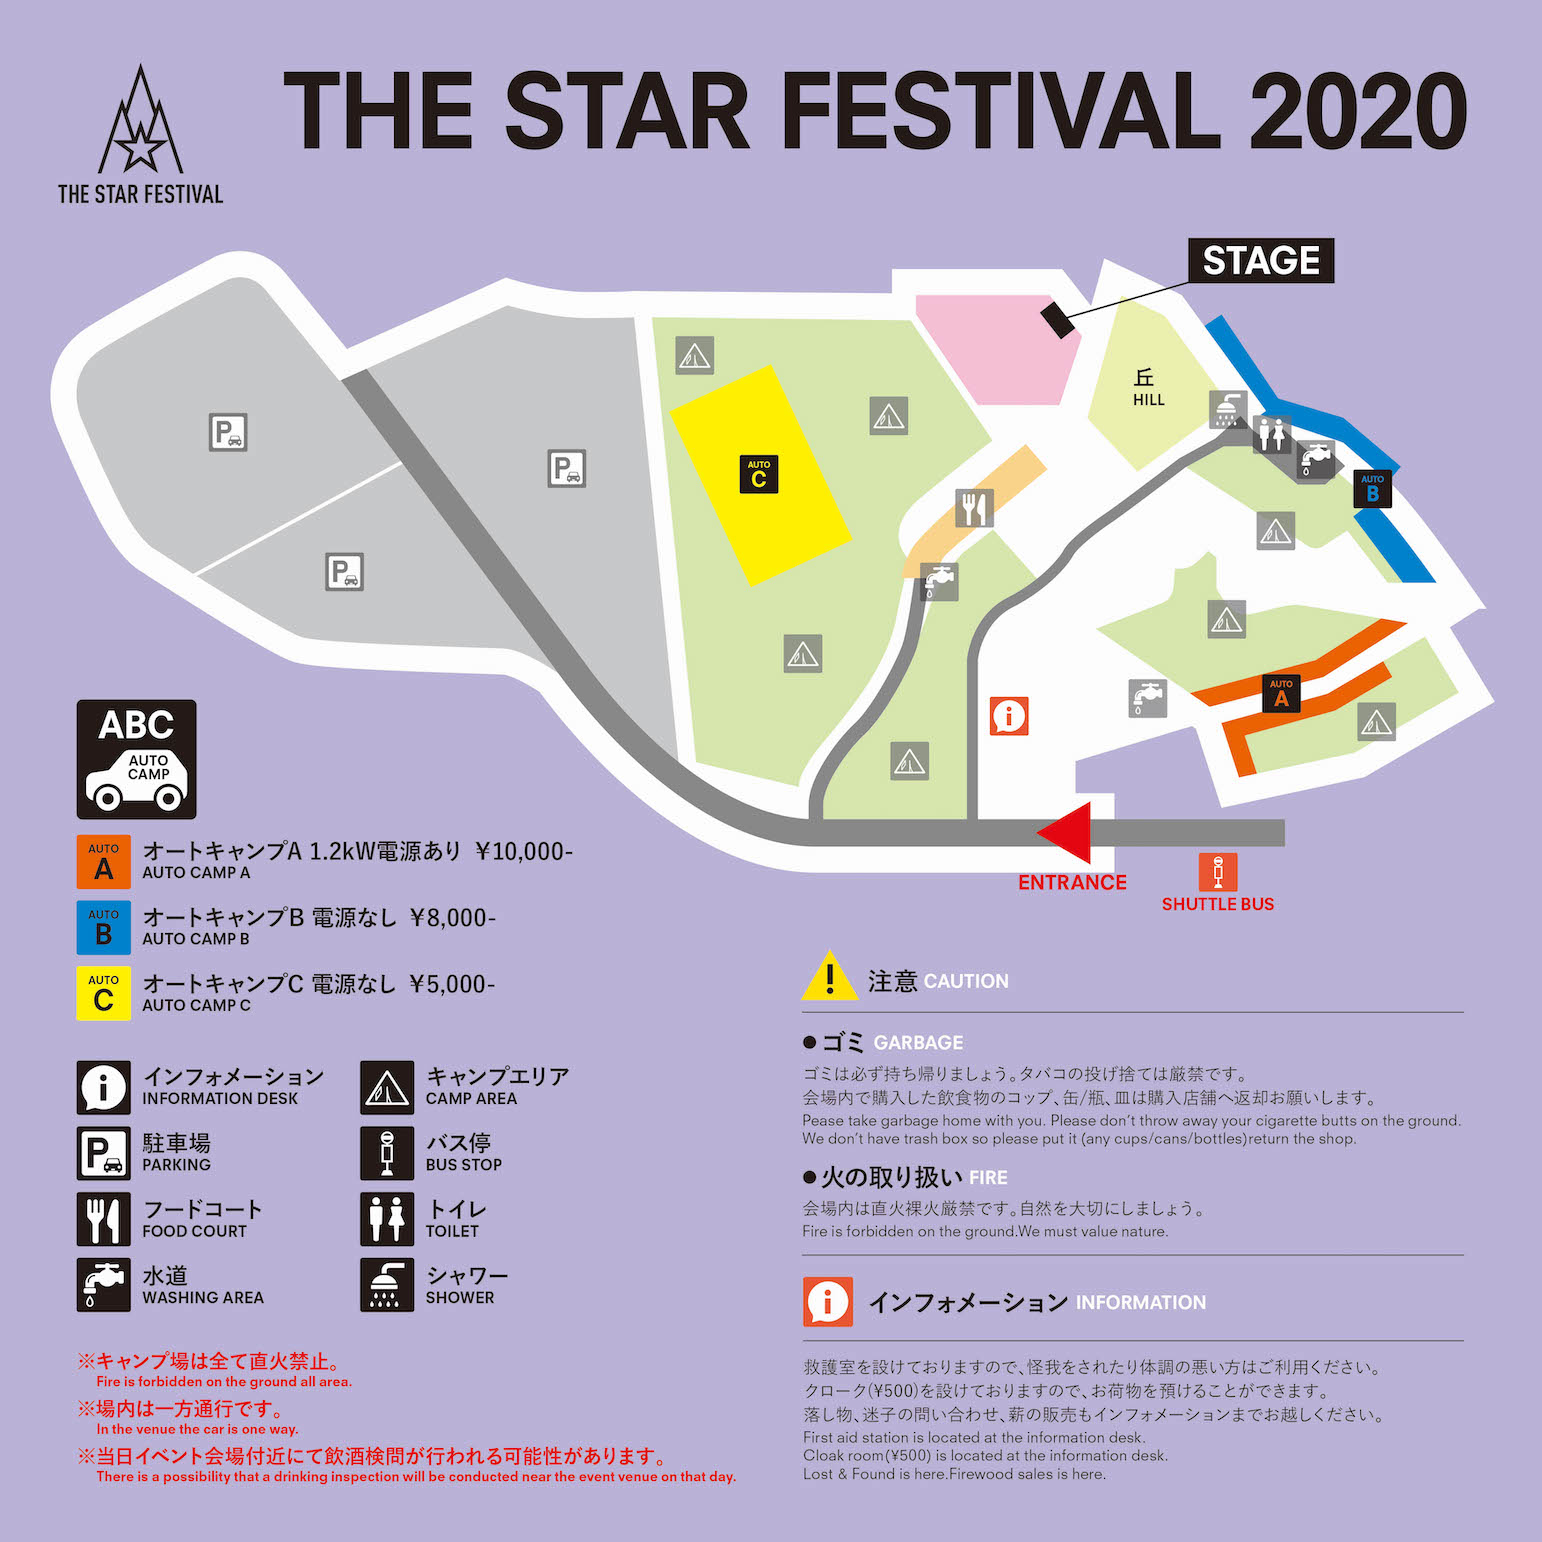 THE STAR FESTIVAL 2020 MAP